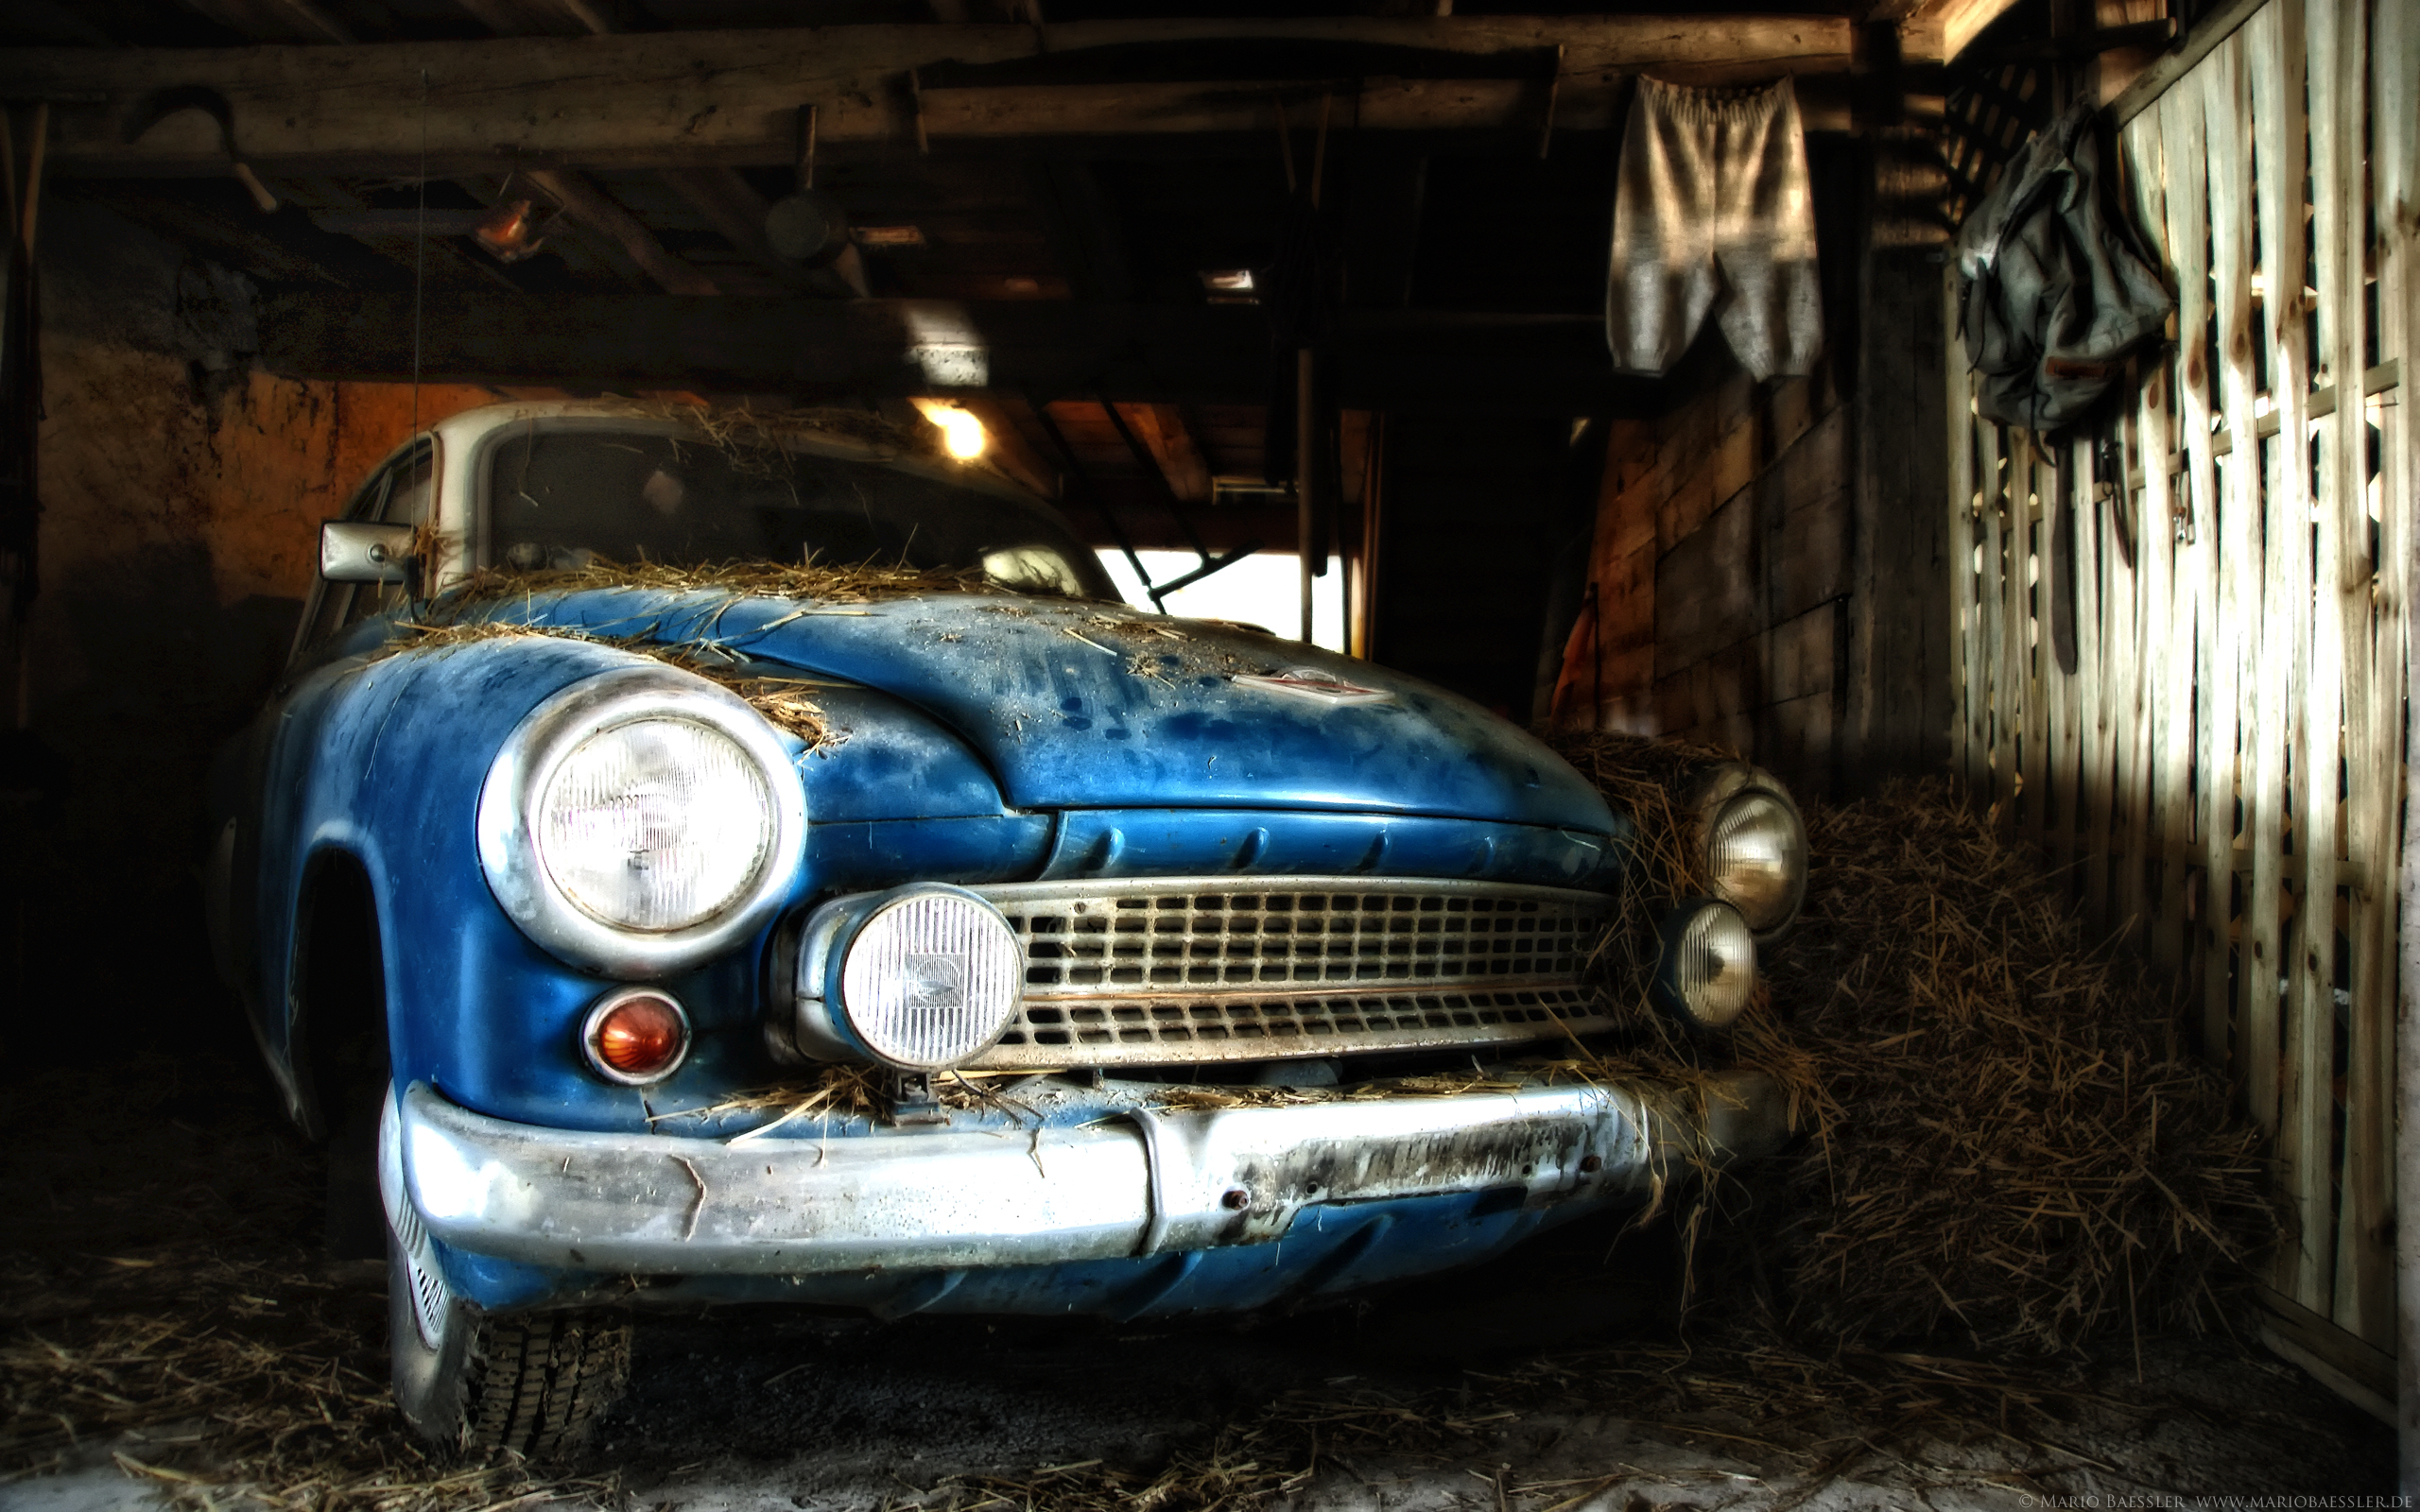 Cars Inspiring Old Rusty Car Desktop Wallpaper Image Browse